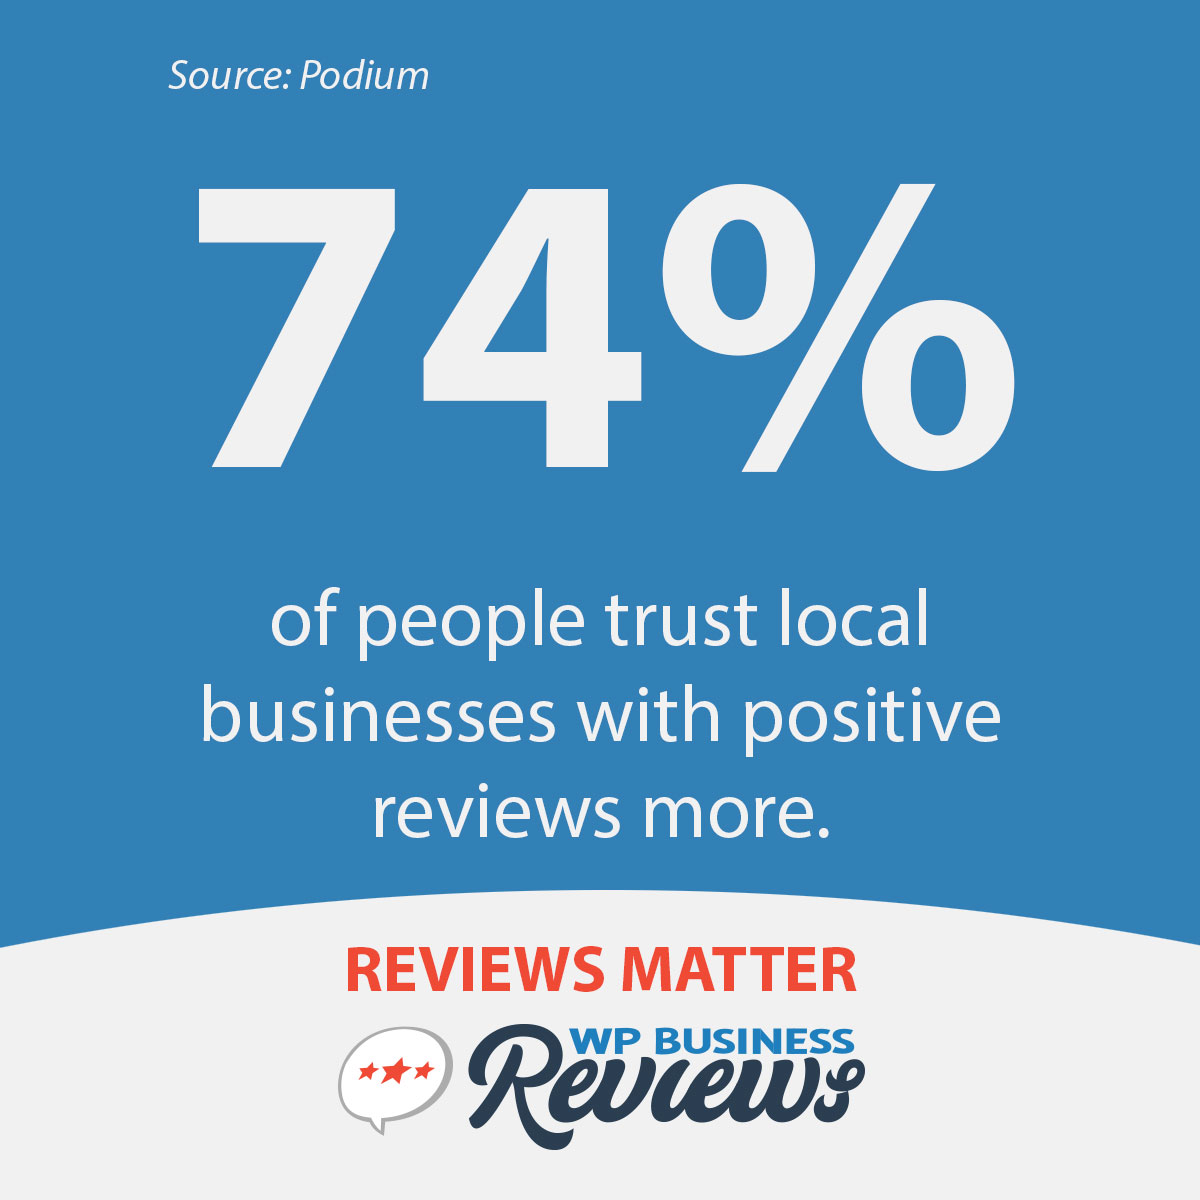 According to Podium, 74% of people trust local businesses with positive reviews more.